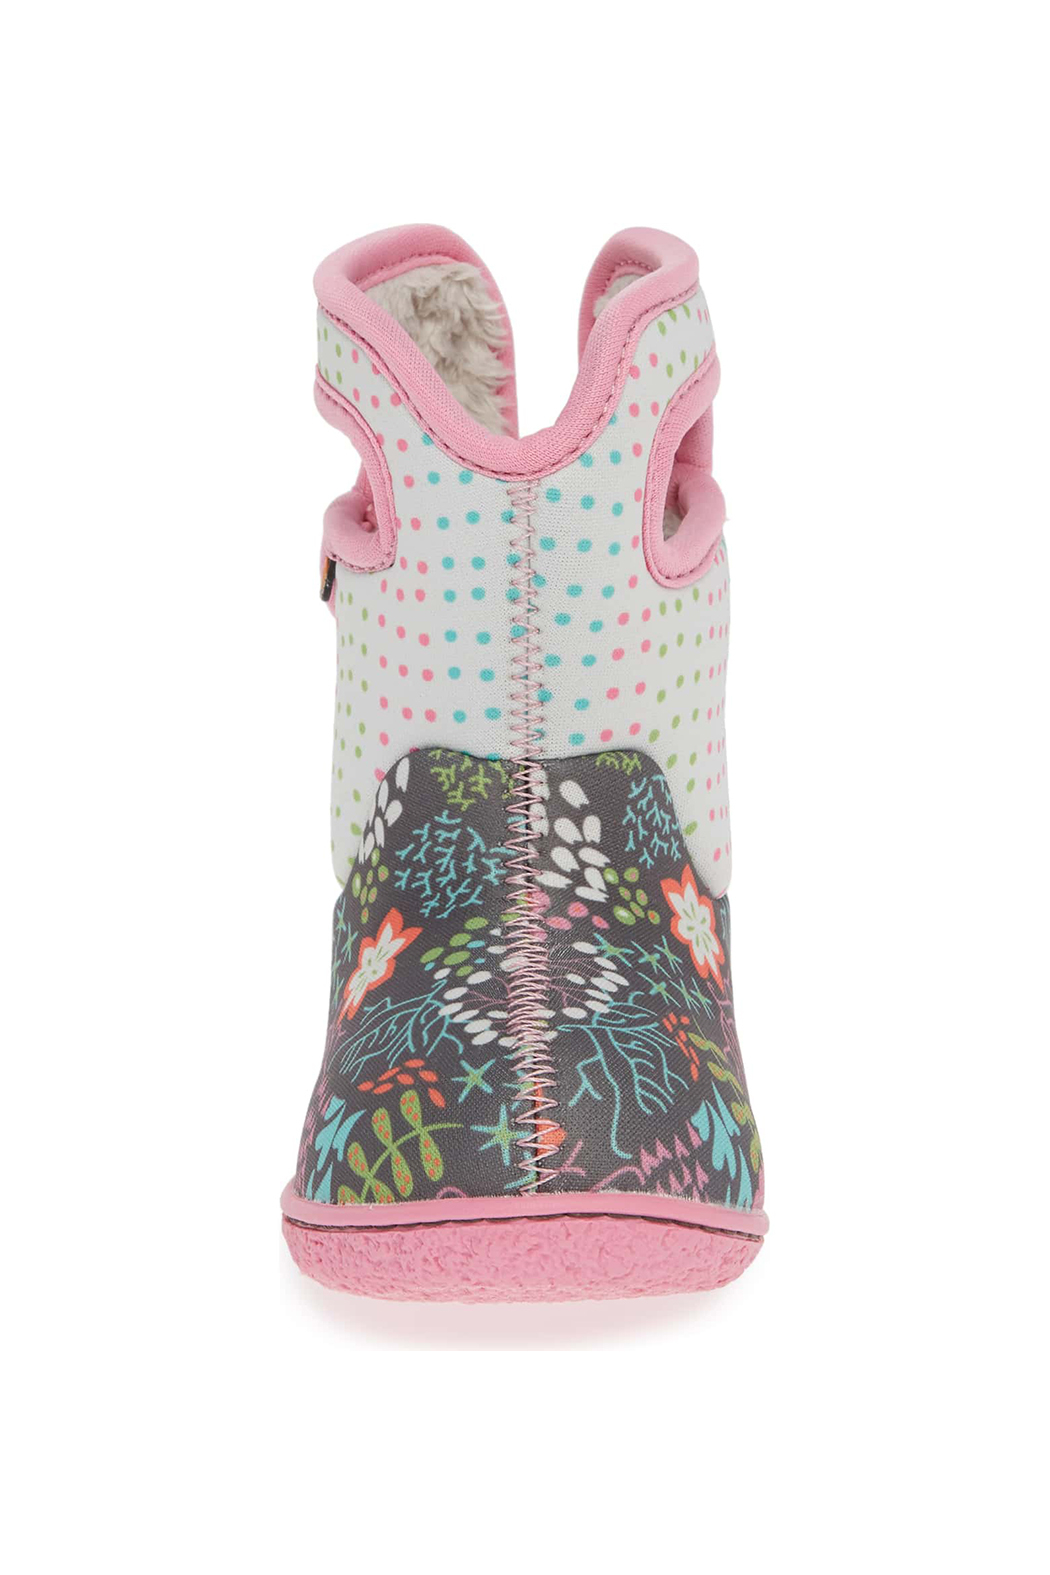 BOGS Baby Bogs Gray Flower Dot Waterproof Boot - Side Cropped Image